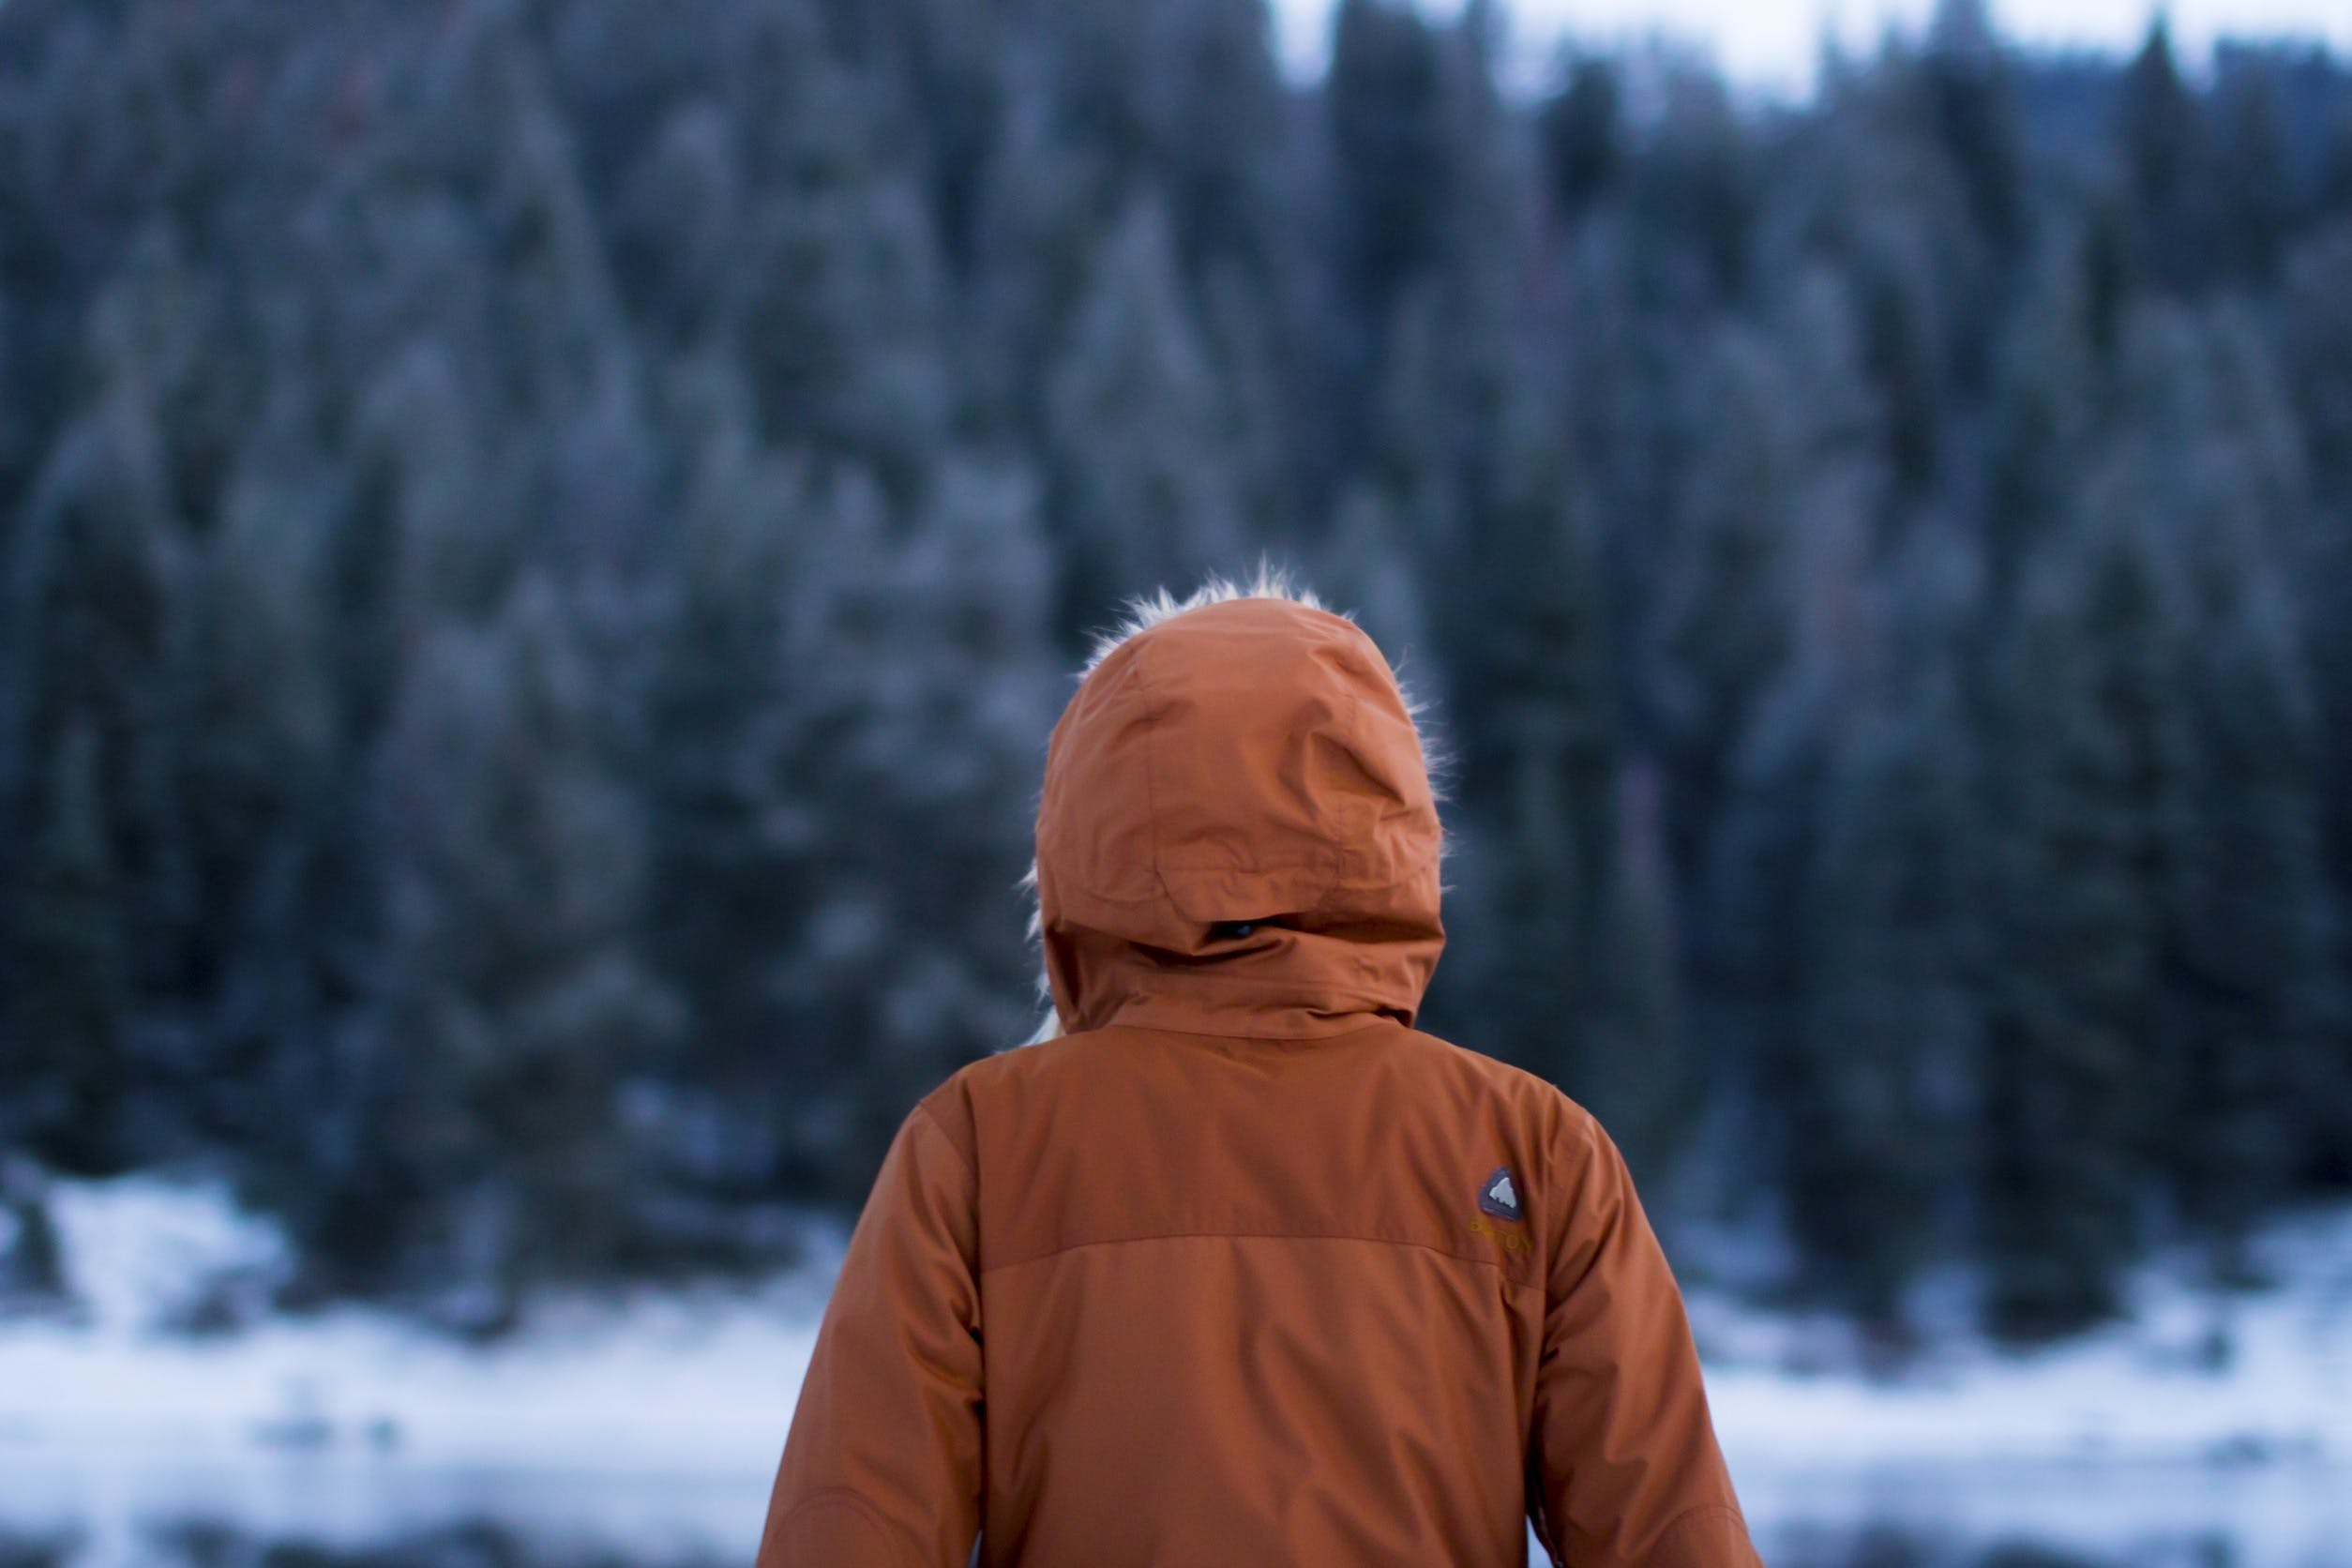 Free stock photo of cold, wood, person, winter